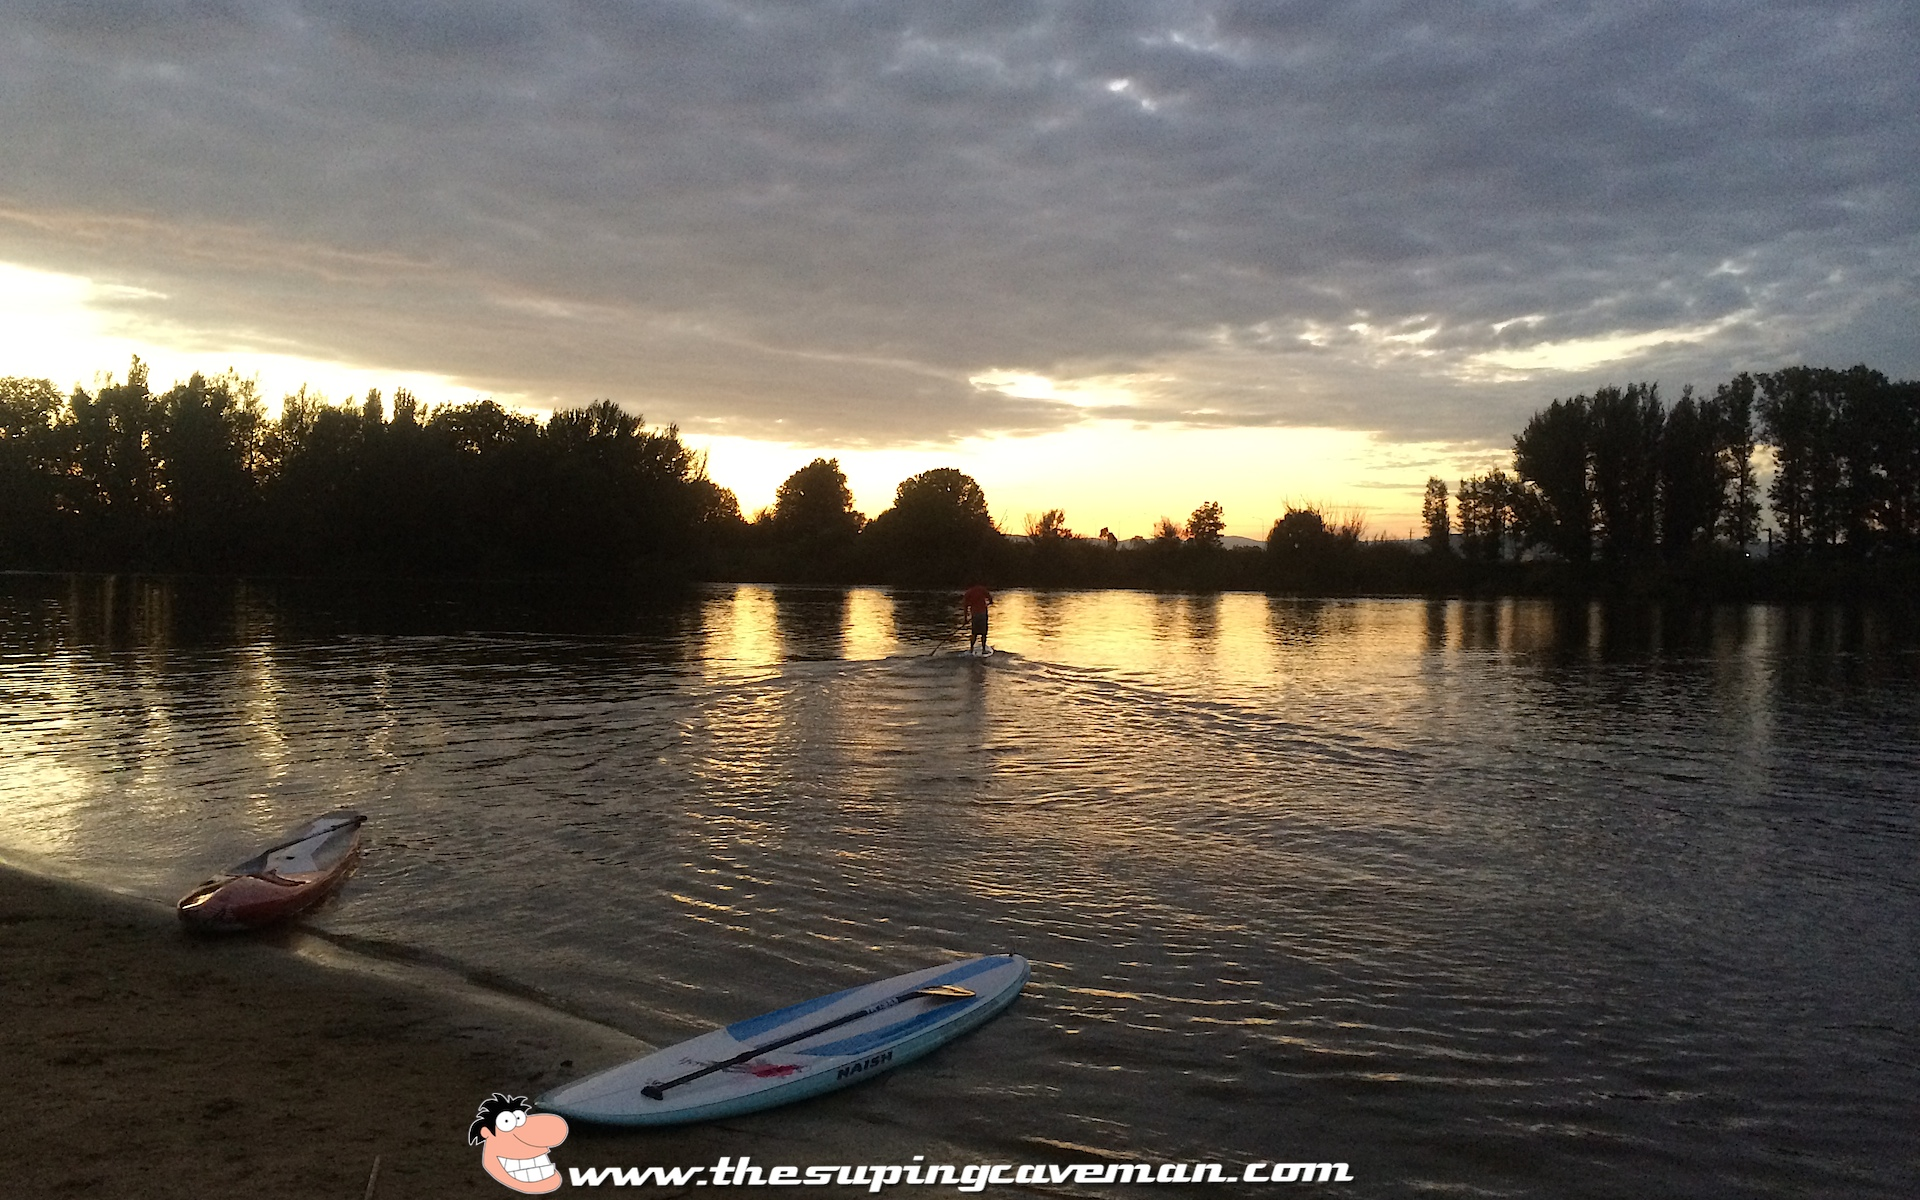 Great start to the day with some high intensity SUP